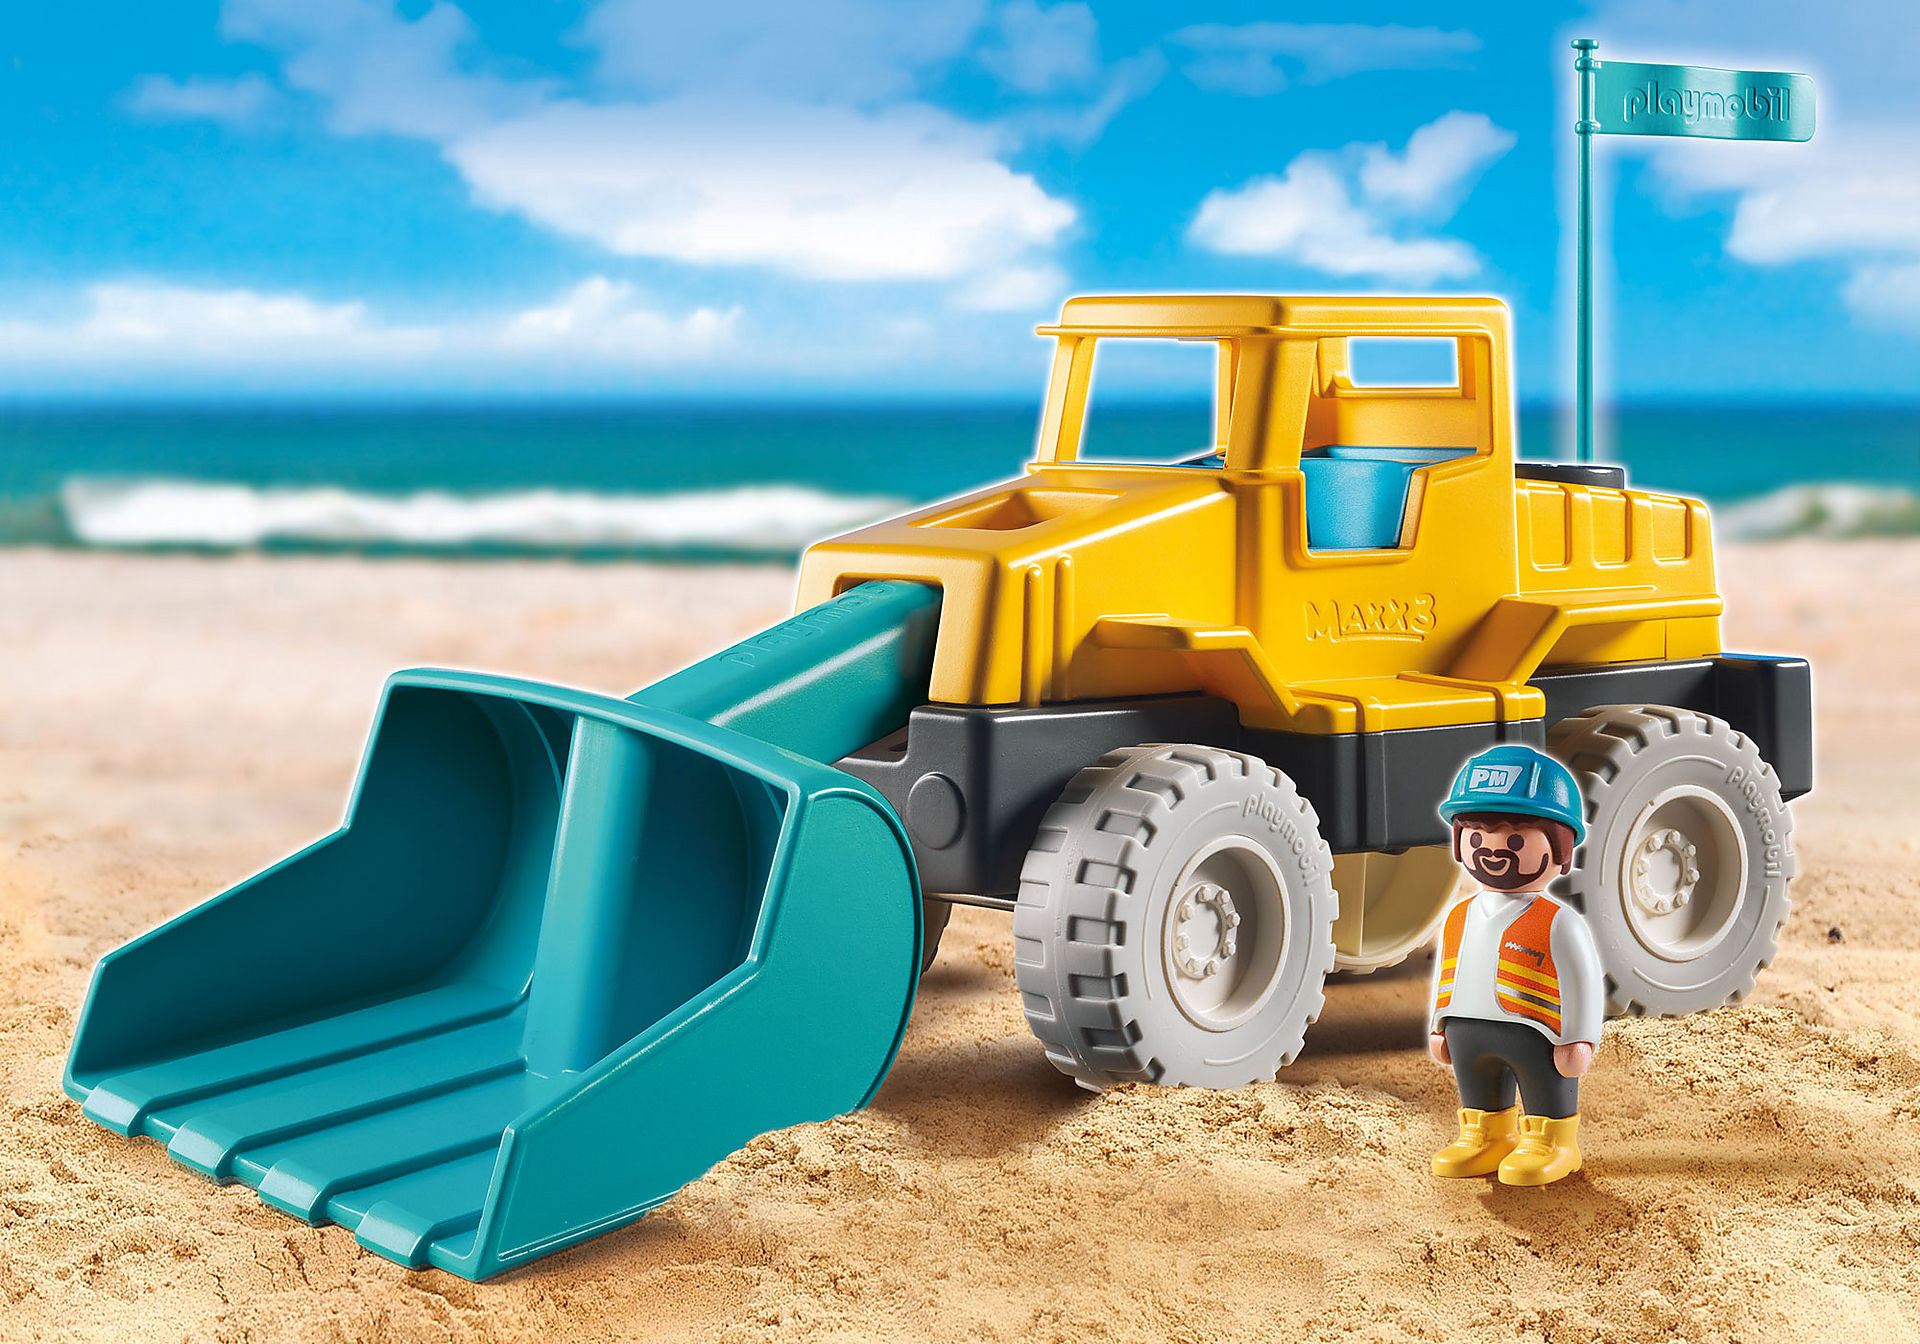 http://media.playmobil.com/i/playmobil/9145_product_detail/Koparka do piasku